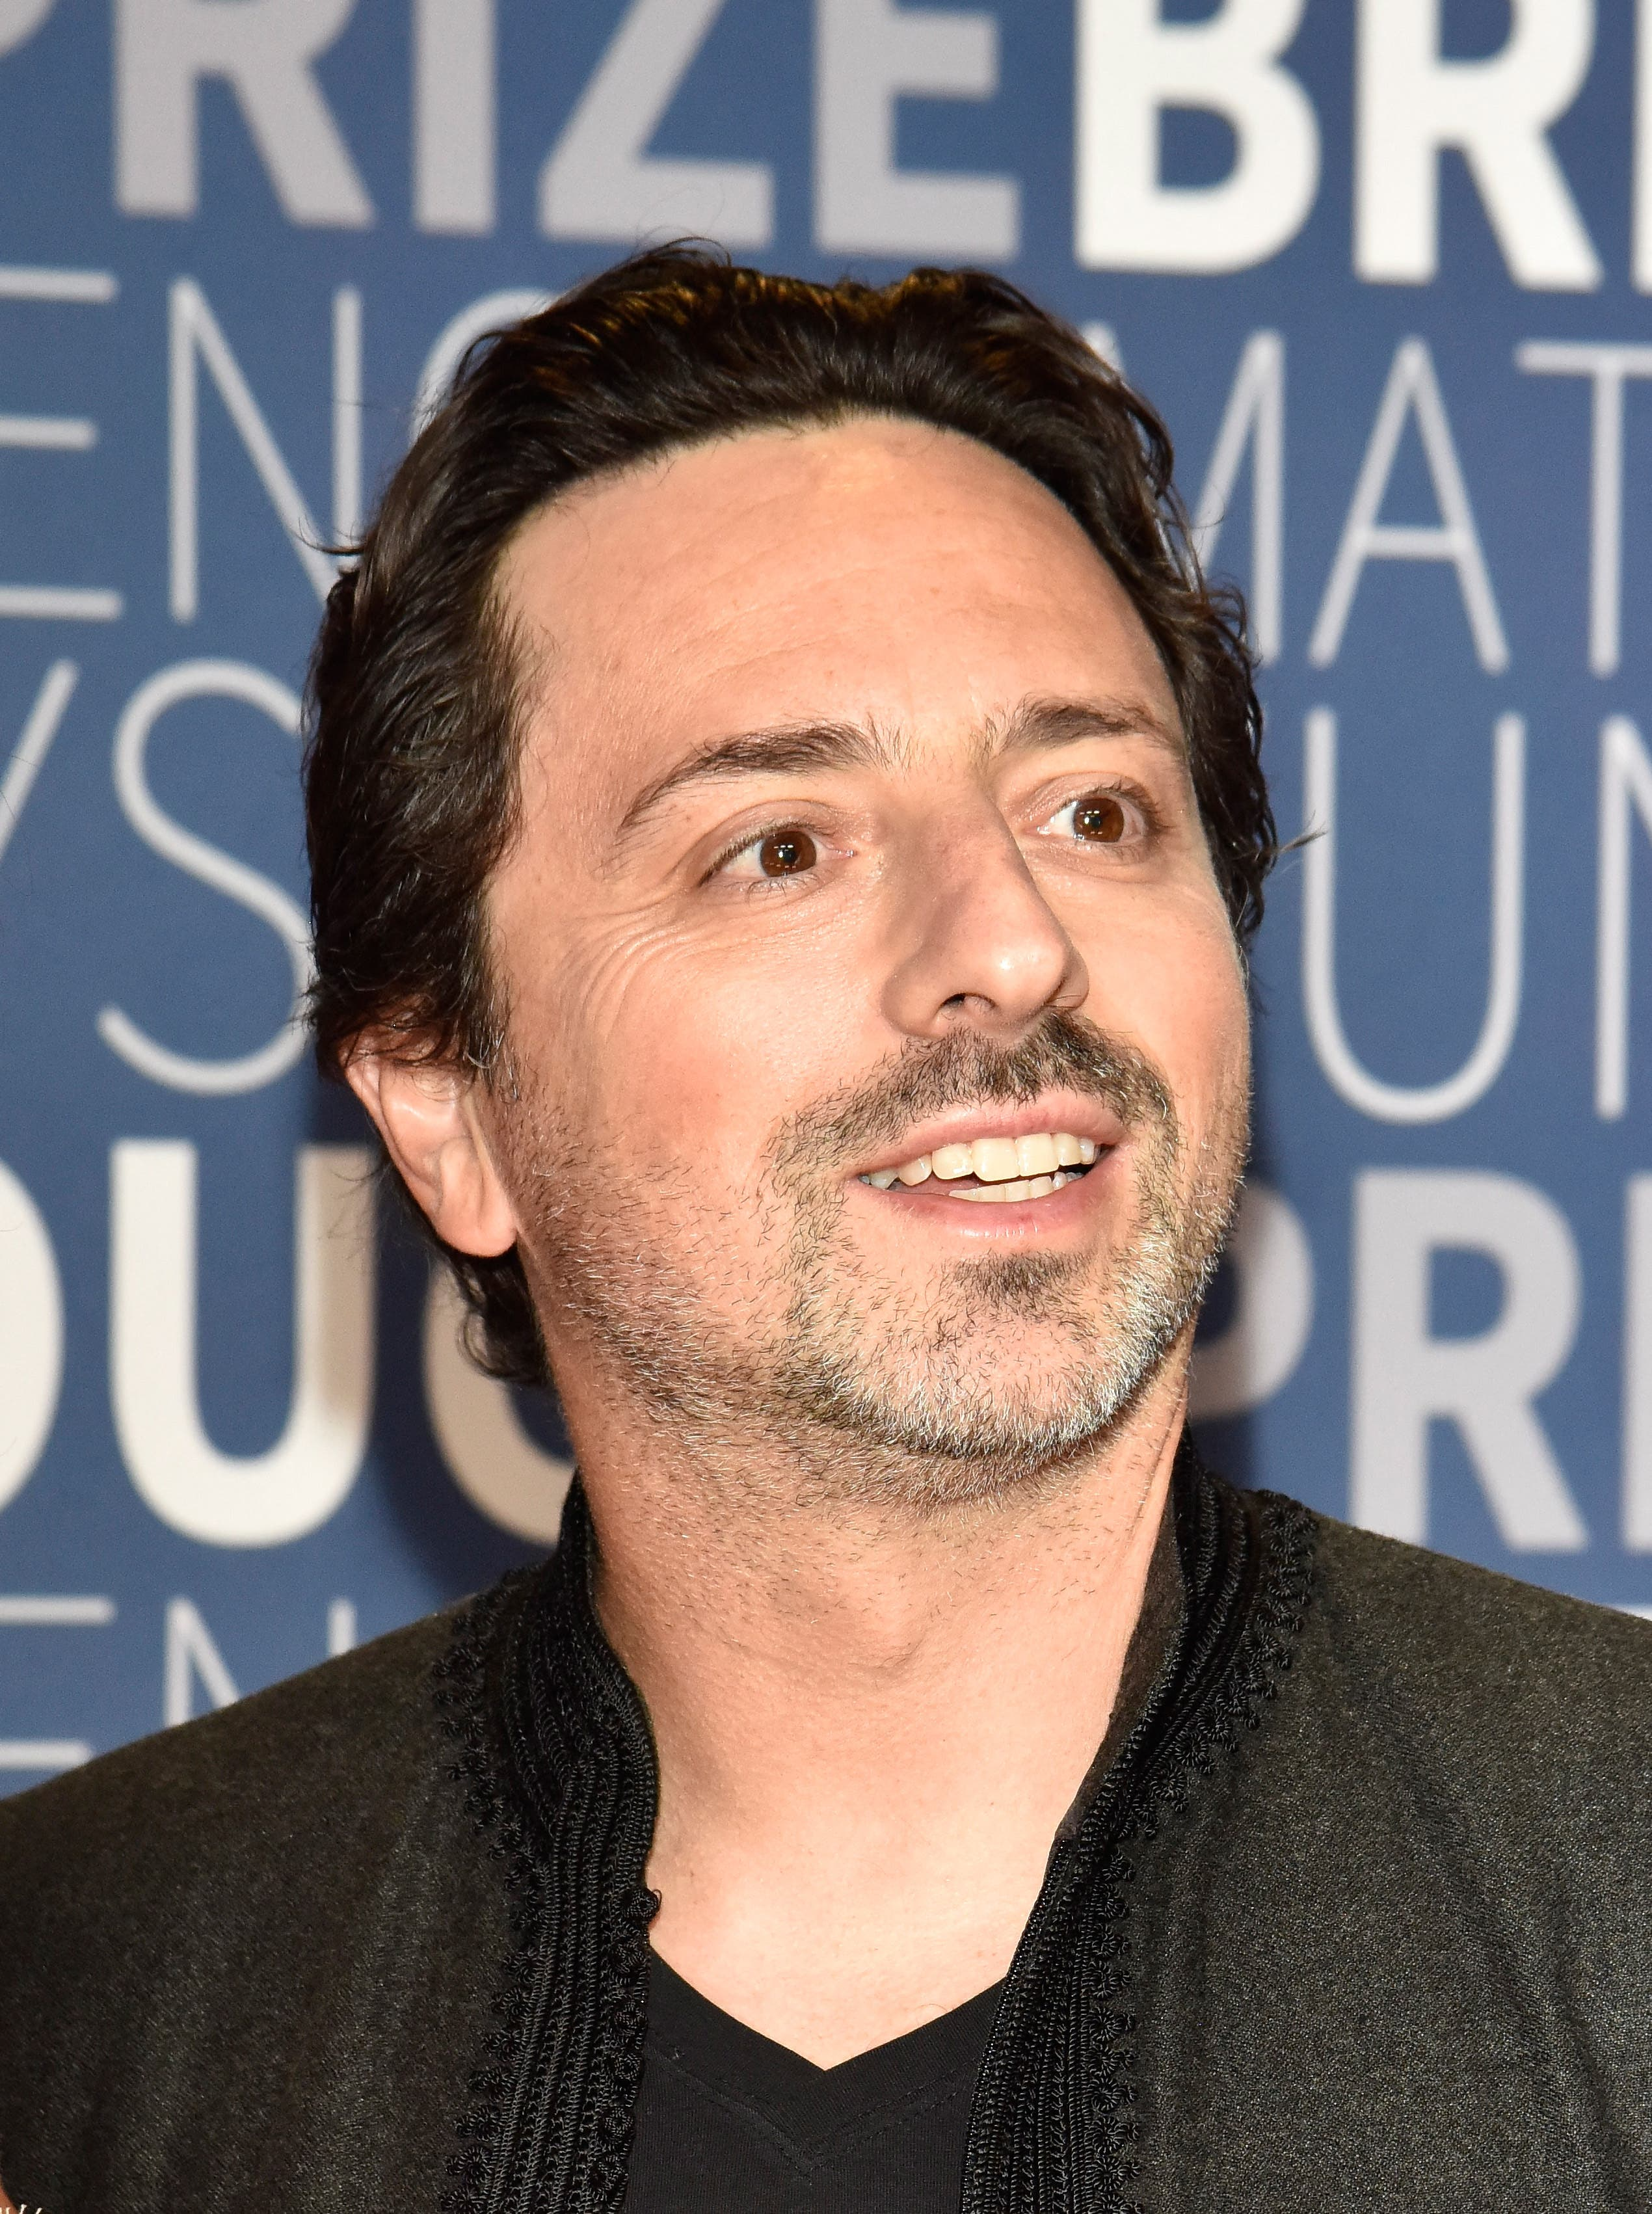 Sergey Brin attend the 2019 Breakthrough Prize at NASA Ames Research Center on November 4, 2018 in Mountain View, California. (File photo: AFP)